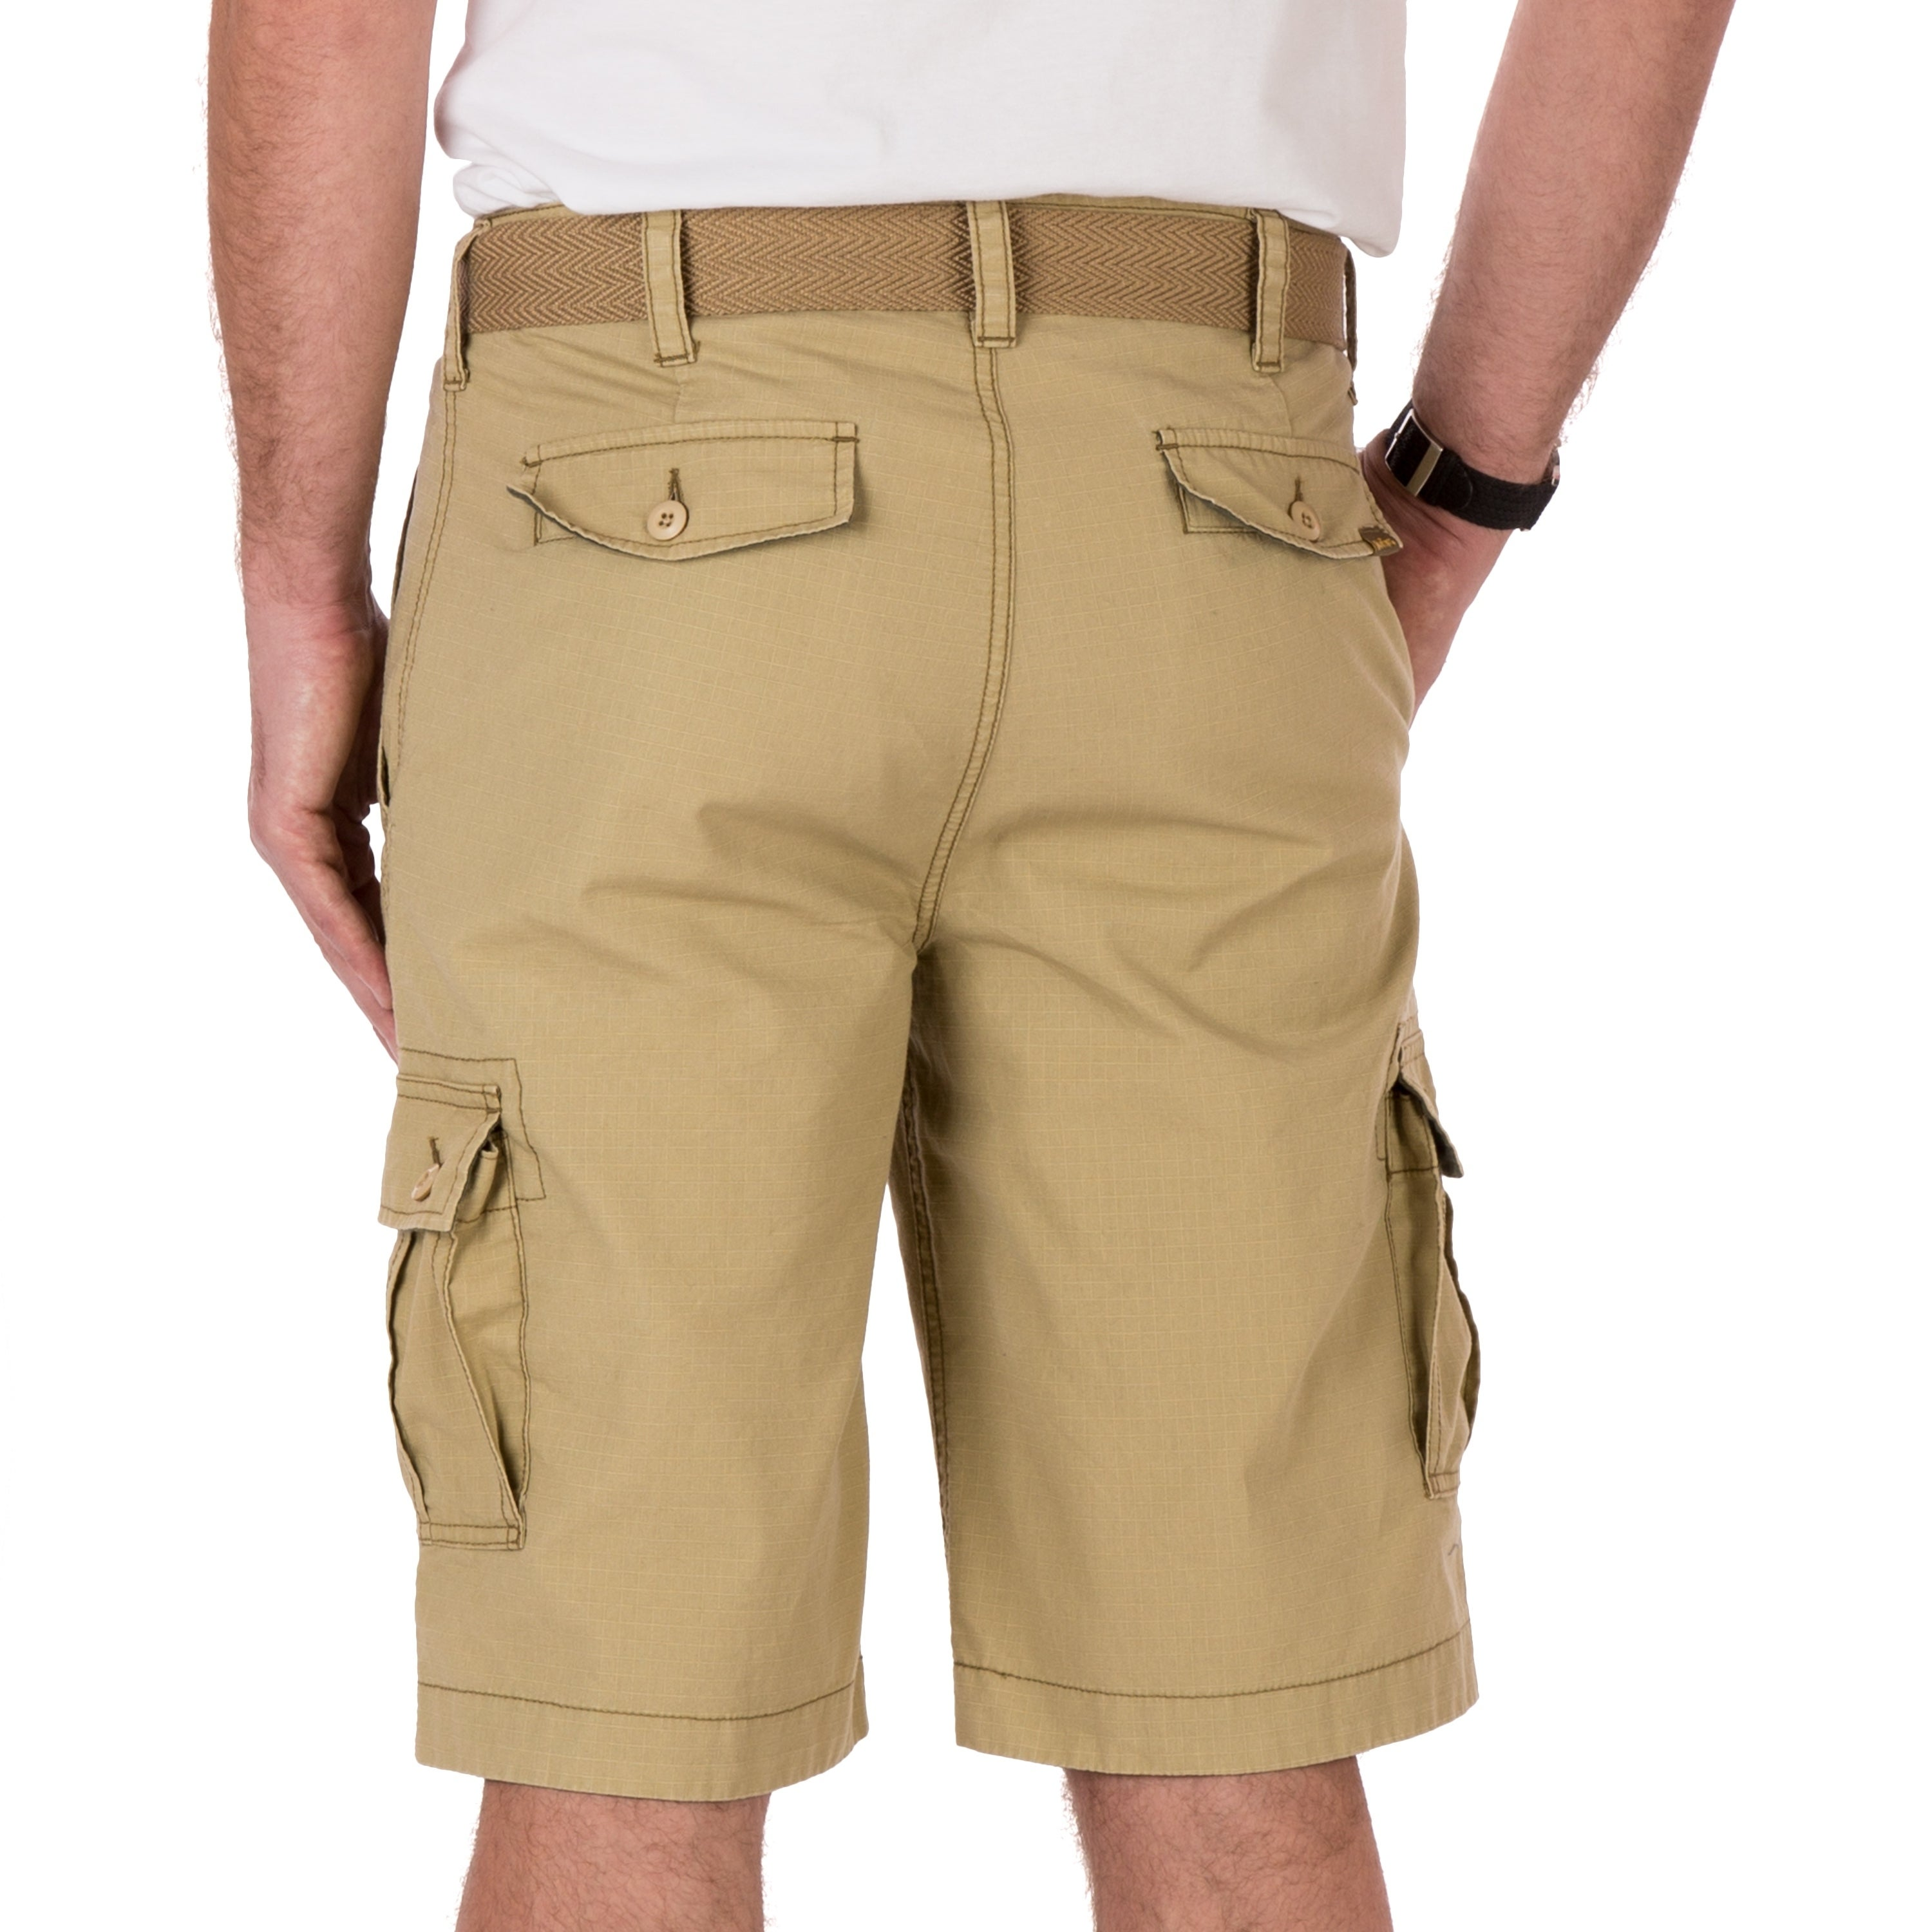 f381cde4af Shop Wearfirst Caution Ripstop Belted Legacy Cargo Short - Free Shipping On  Orders Over $45 - Overstock - 22561260